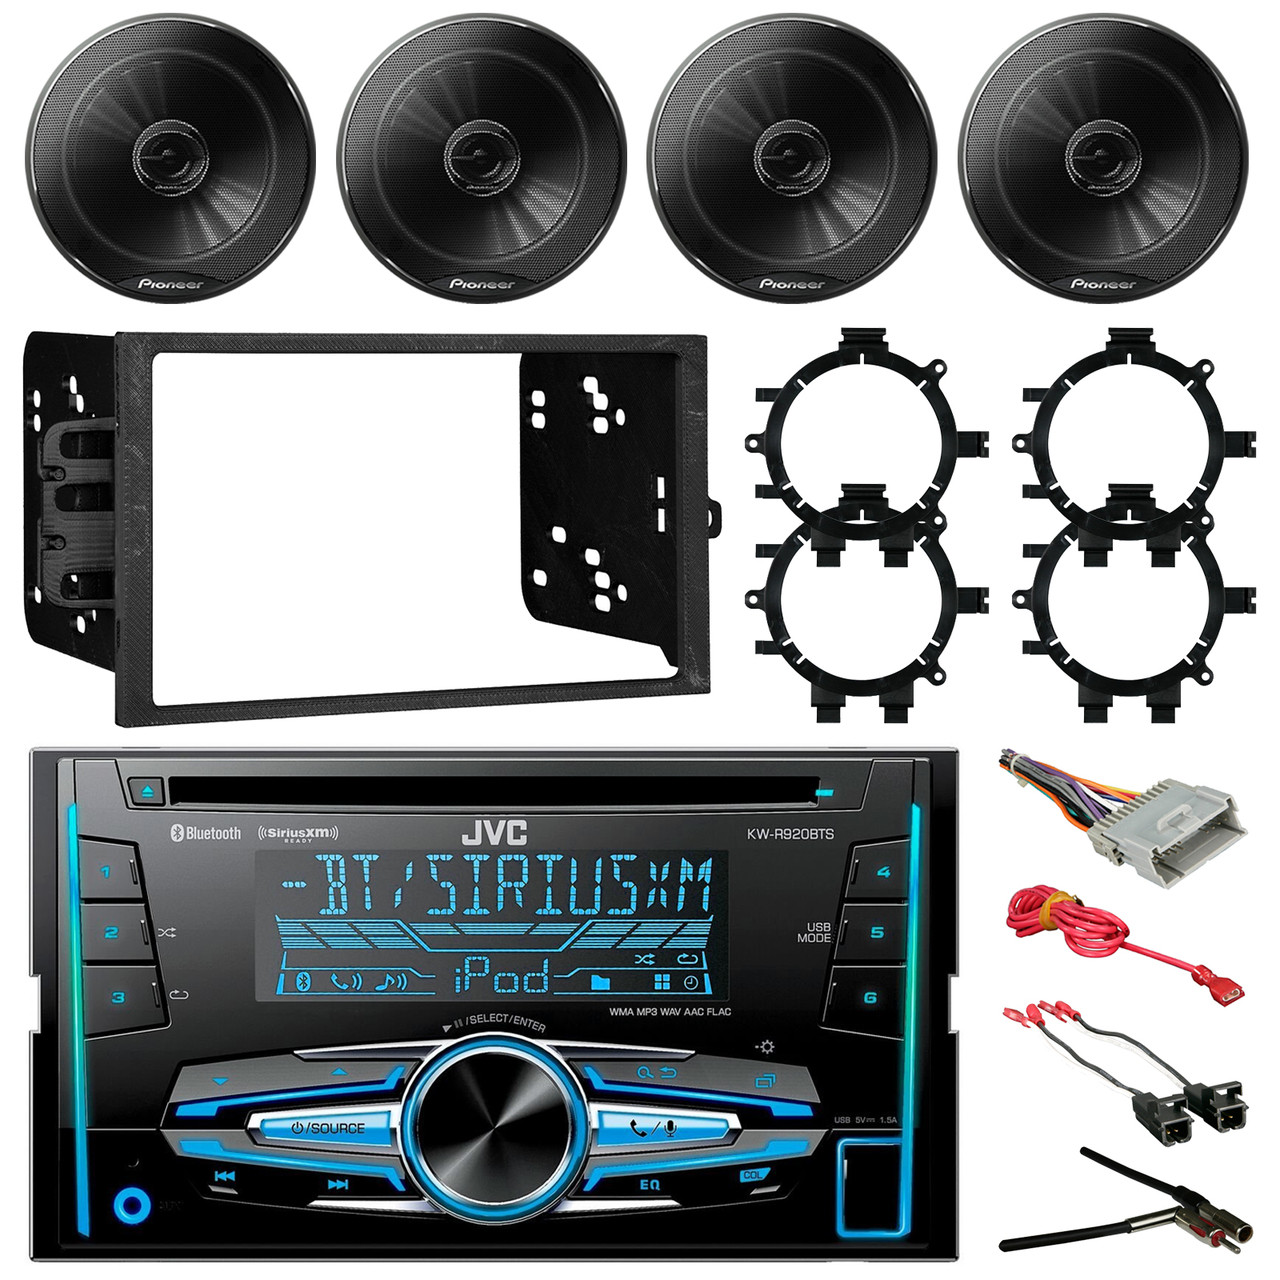 Jvc Kw R920bts Double Din Bluetooth Car Cd Player Stereo Receiver Metra Wire Harness Bundle Combo With 4x 65 Inch 250w Coaxial Speakers W Brackets Wiring